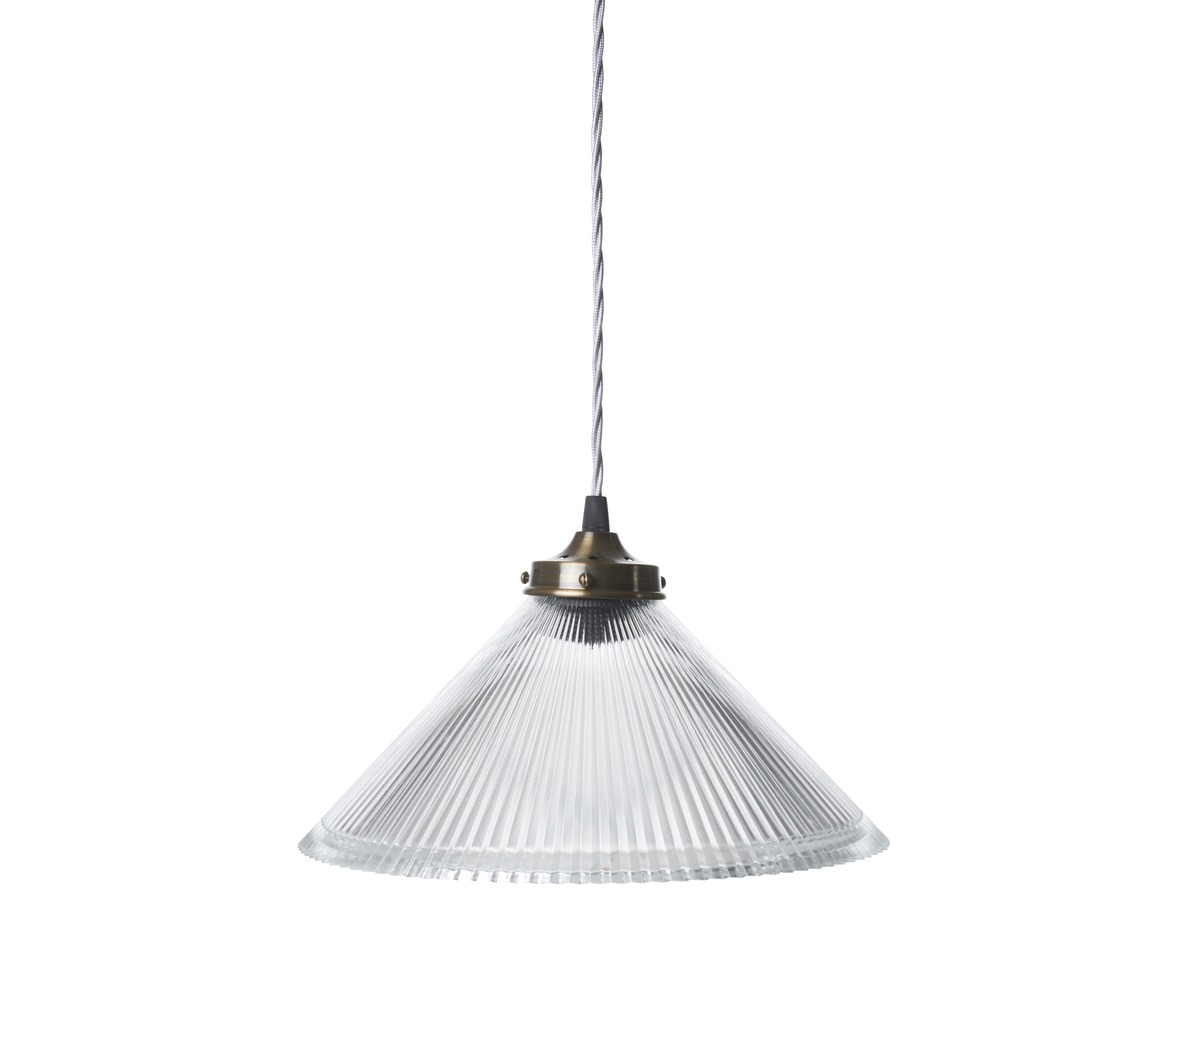 Conical prismatic pendant light the french house conical prismatic pendant light arubaitofo Gallery